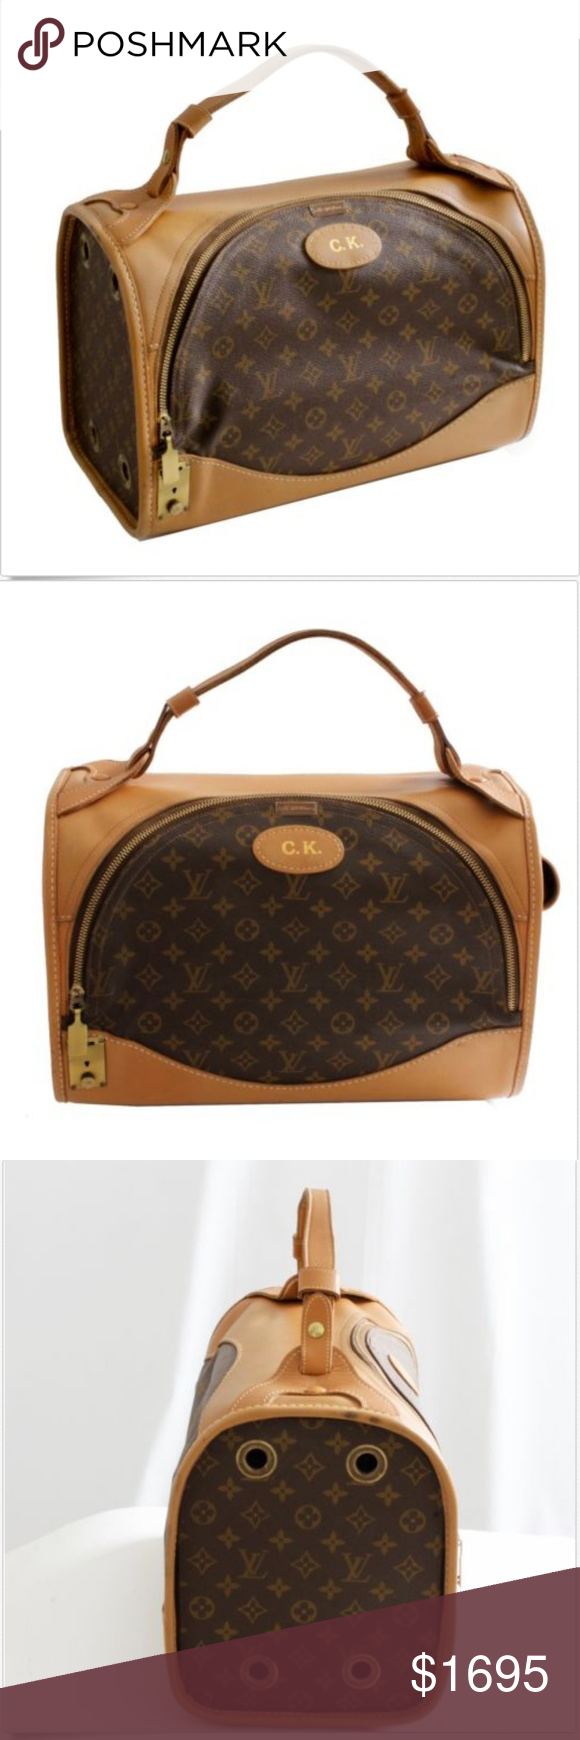 6713fd5e203a Louis Vuitton French Company Sac Chien Dog Carrier Authentic ...